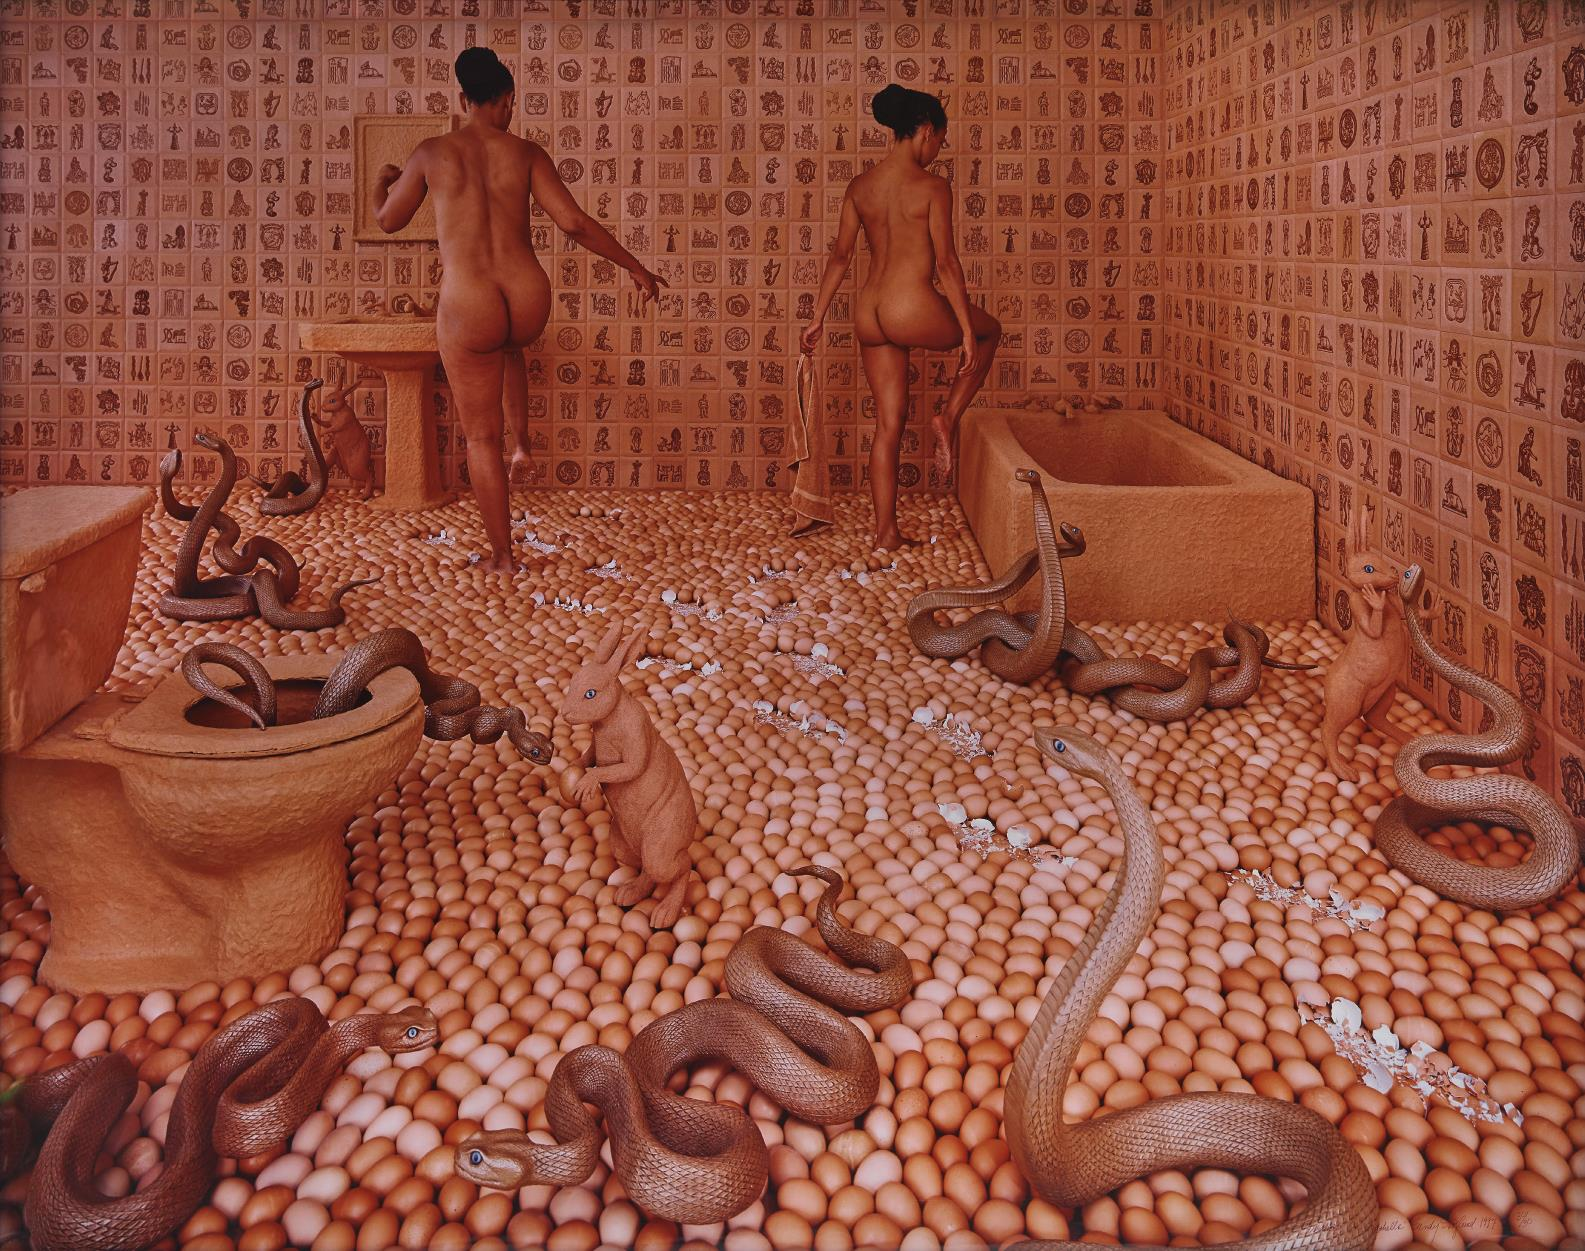 Sandy Skoglund-Walking On Eggshells-1997